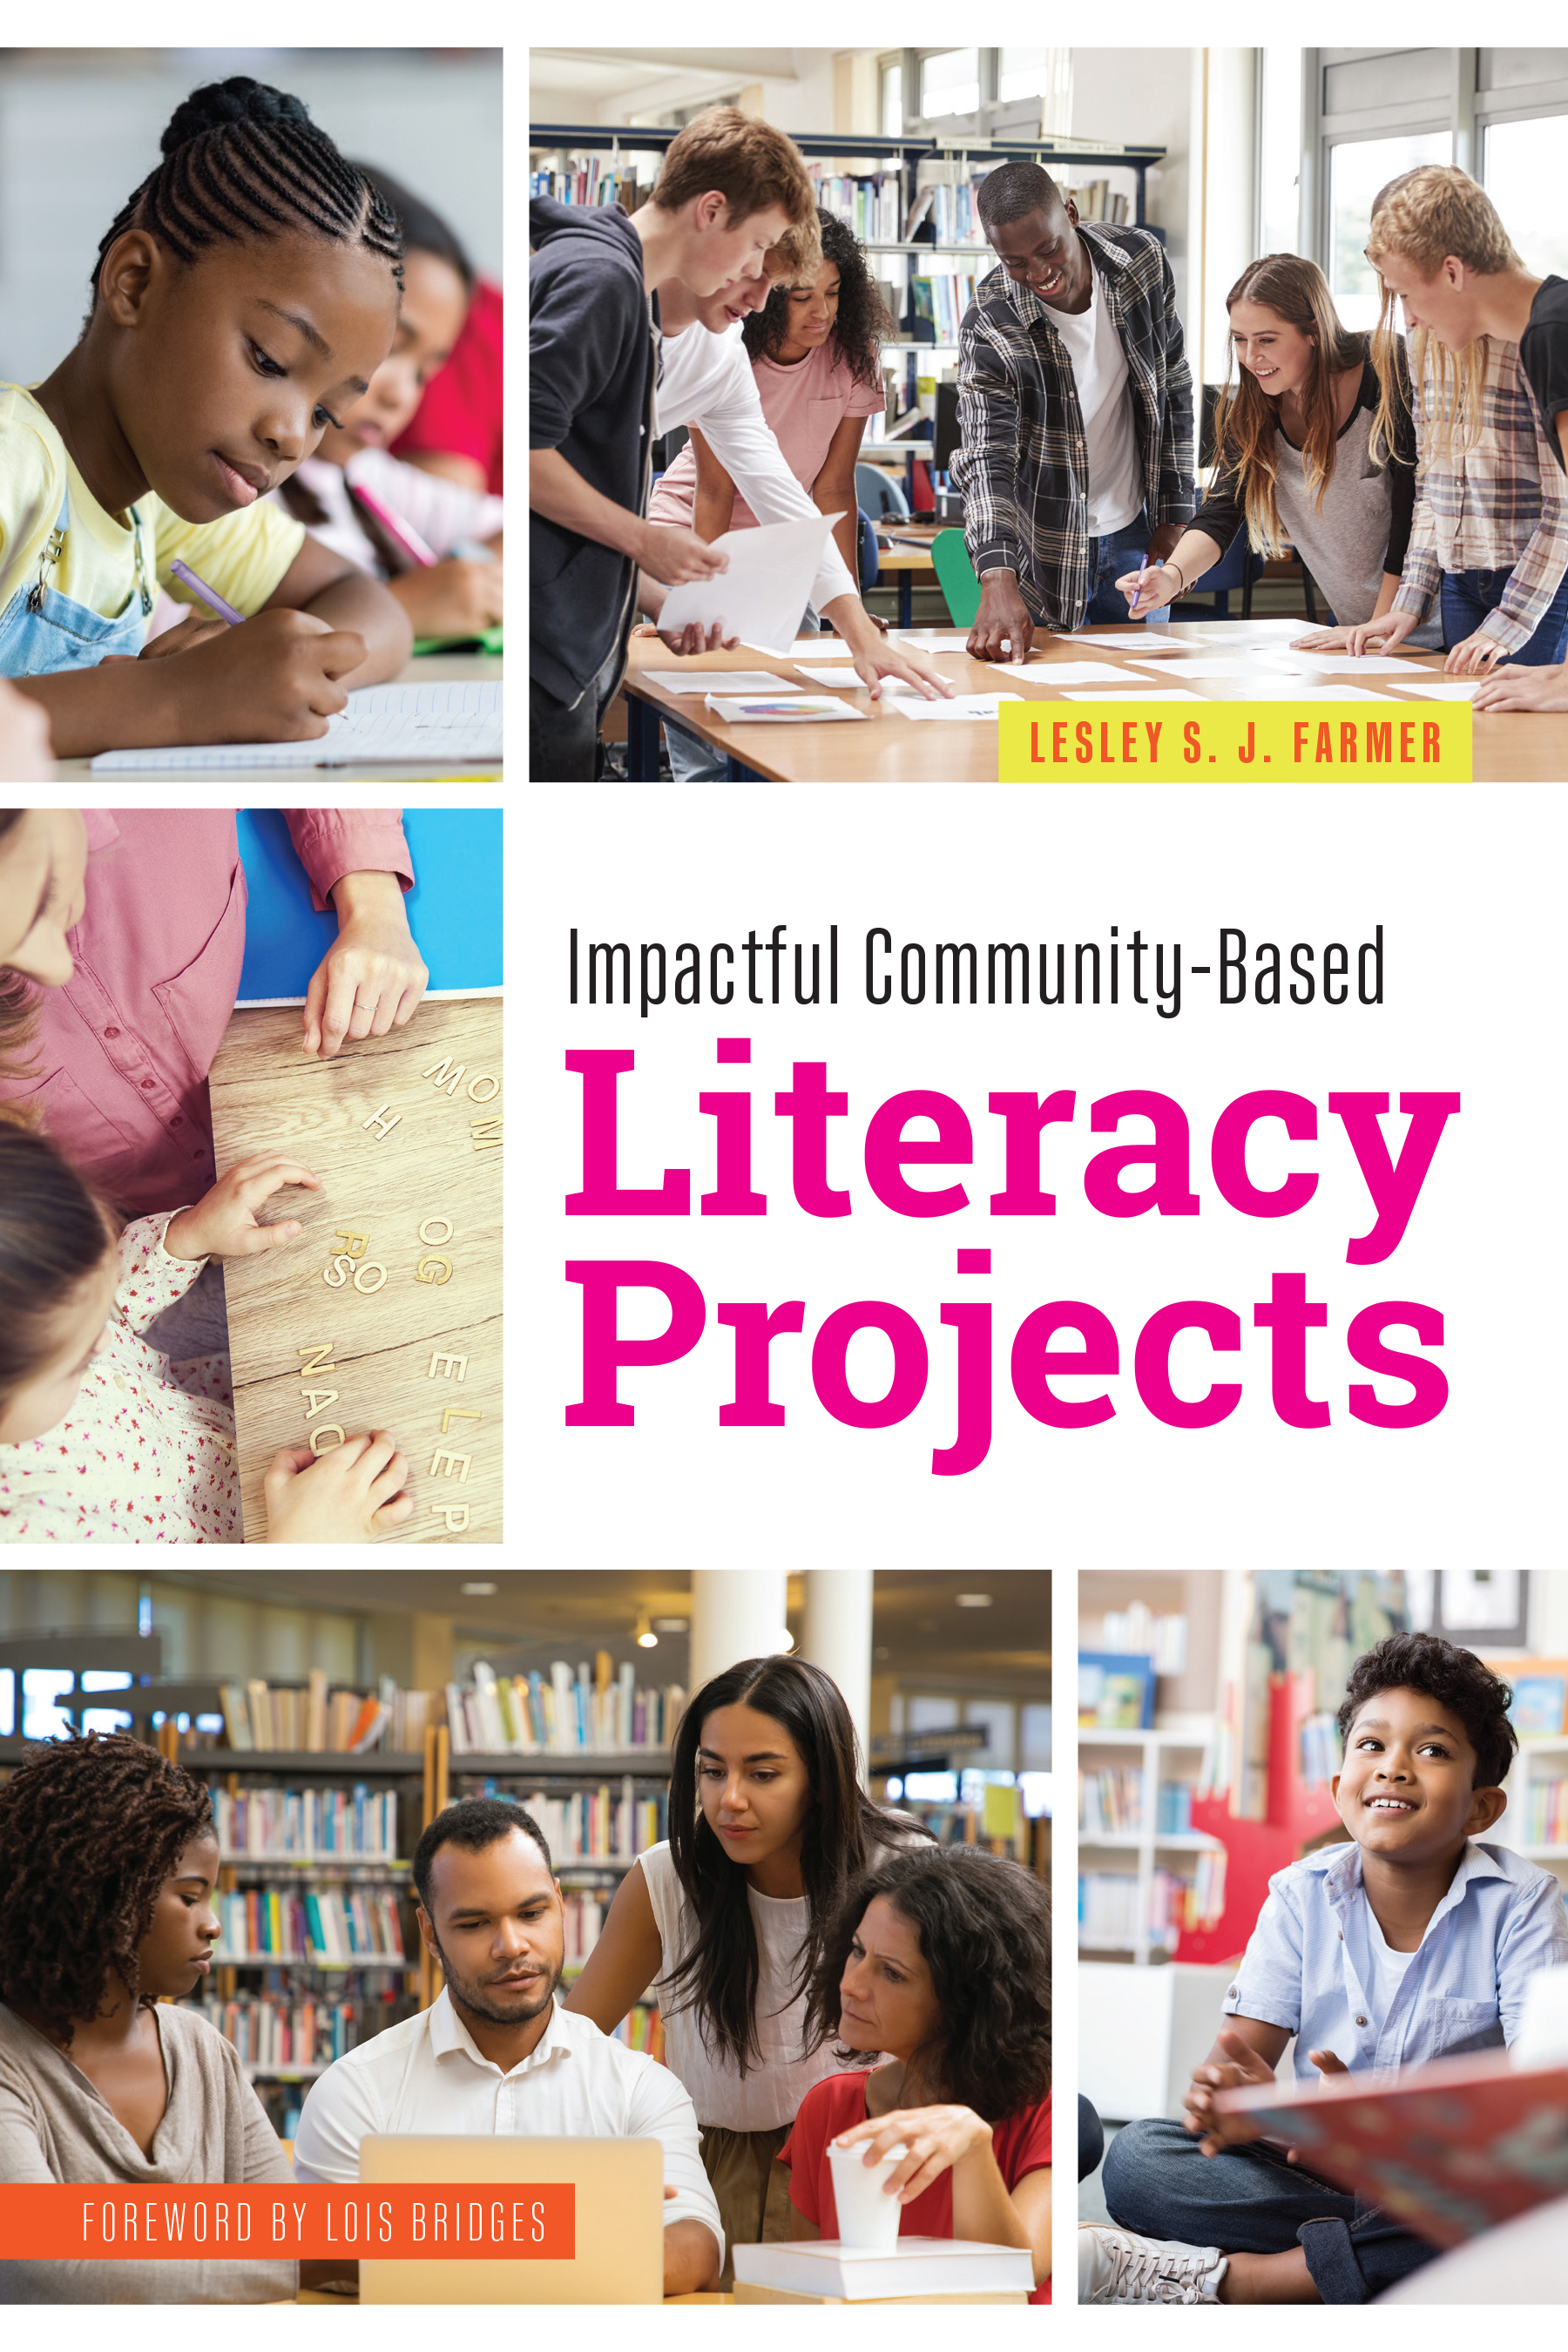 book cover for Impactful Community-Based Literacy Projects